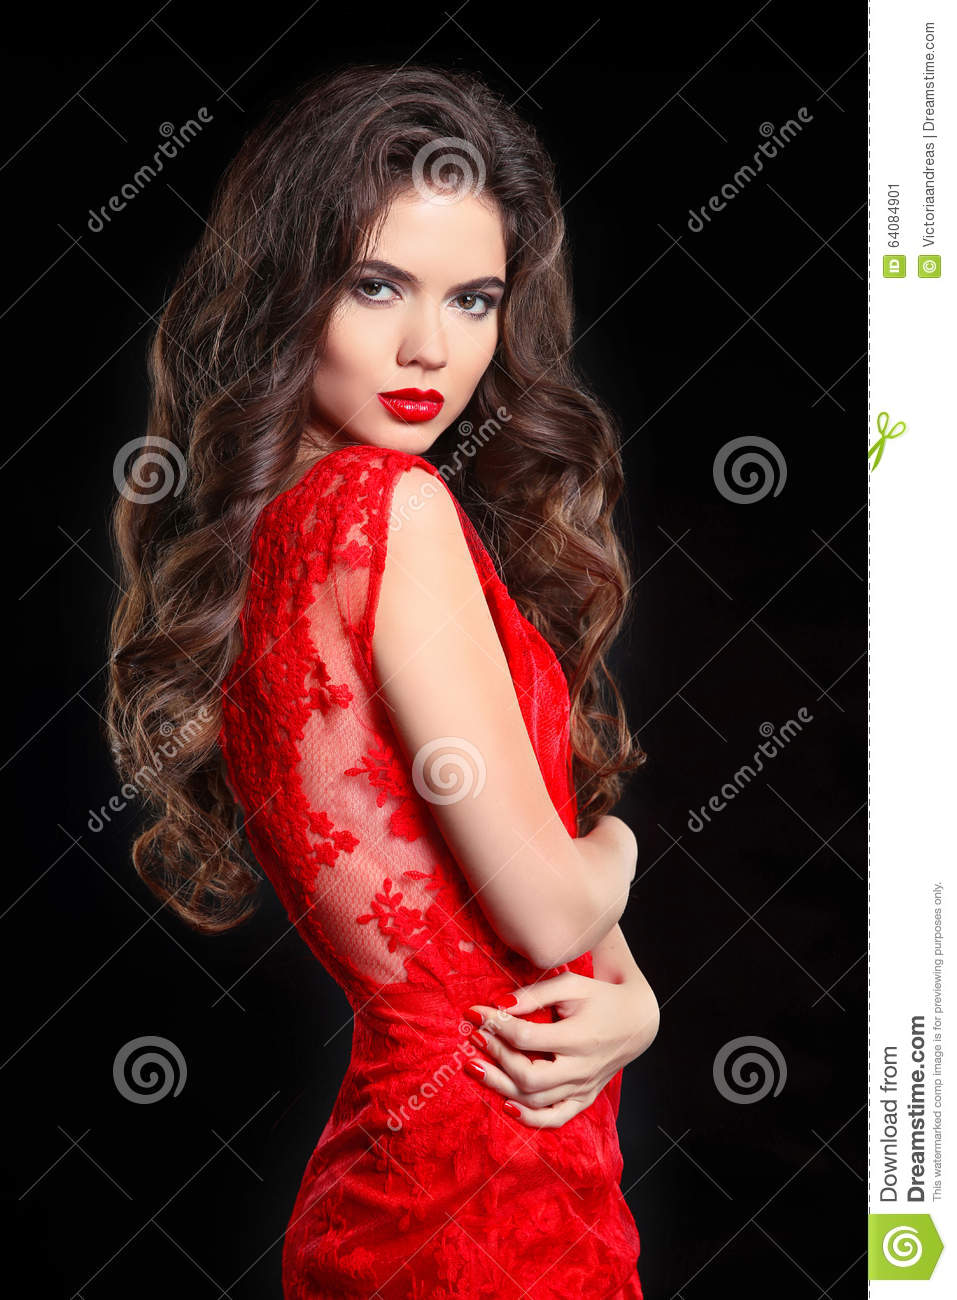 Lipstick Color Is Red Long Hair Beautiful Brunette Woman In Red Lace Dress